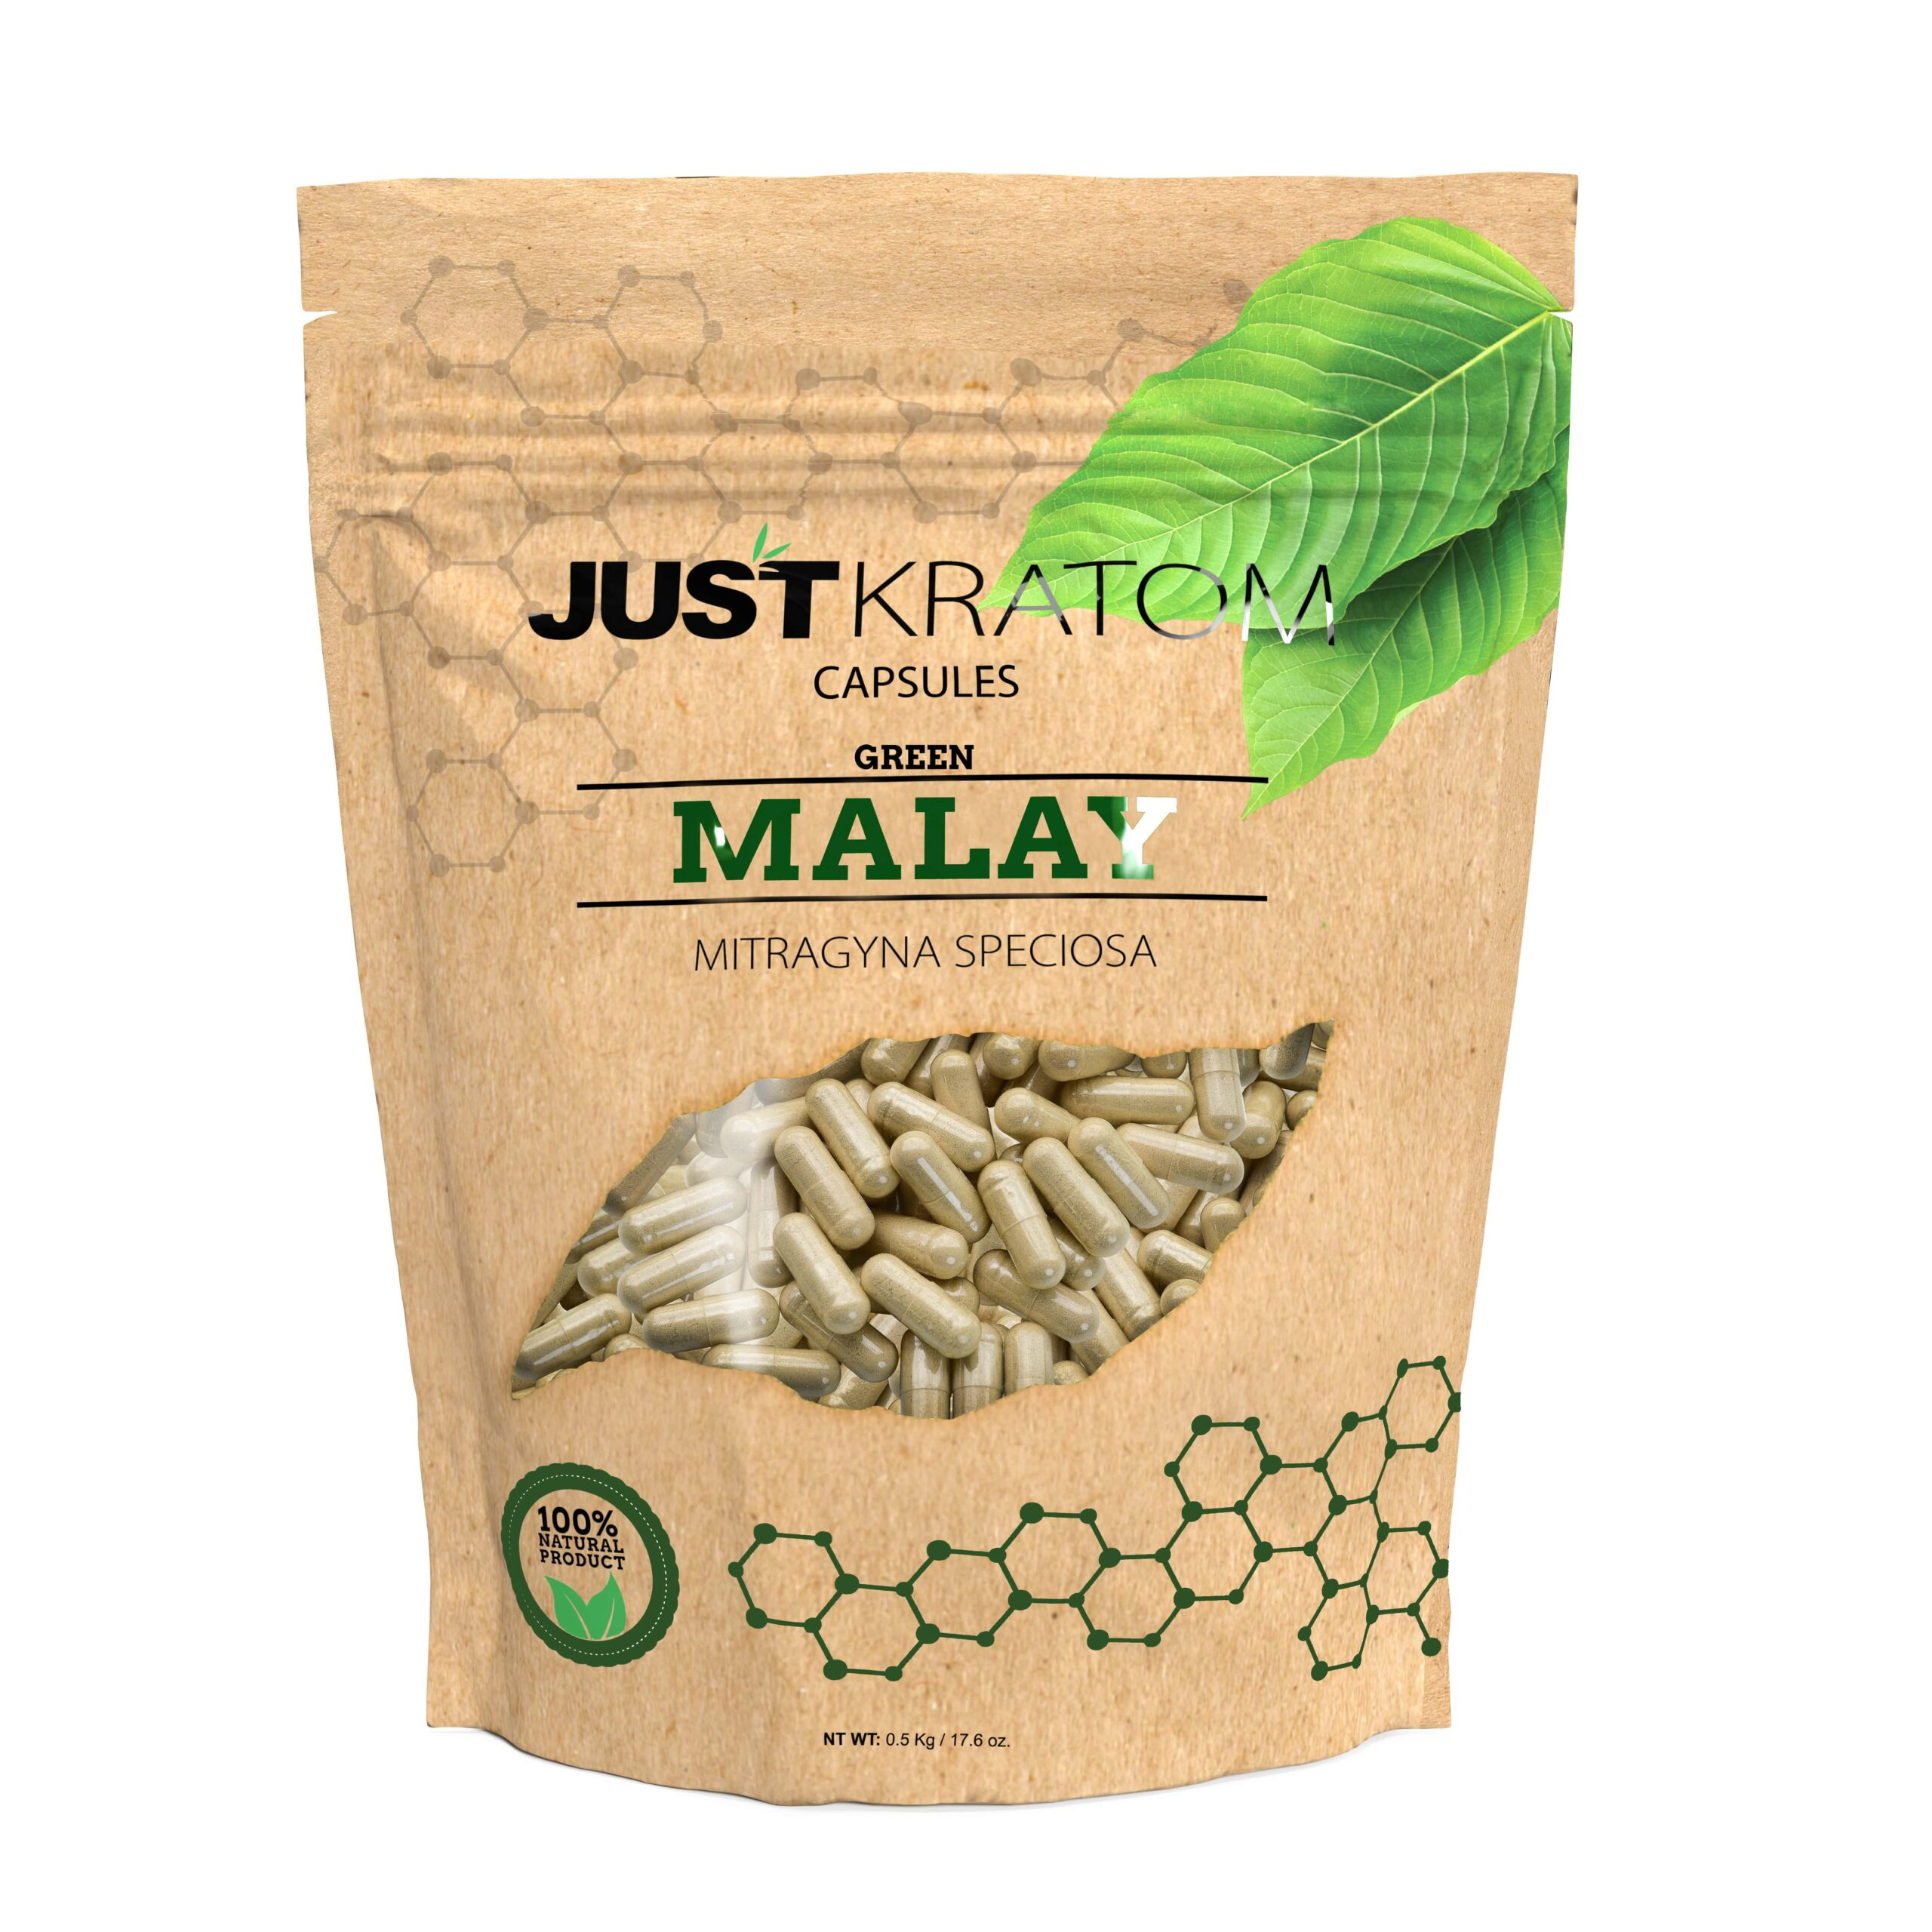 Where To Buy Kratom Pills